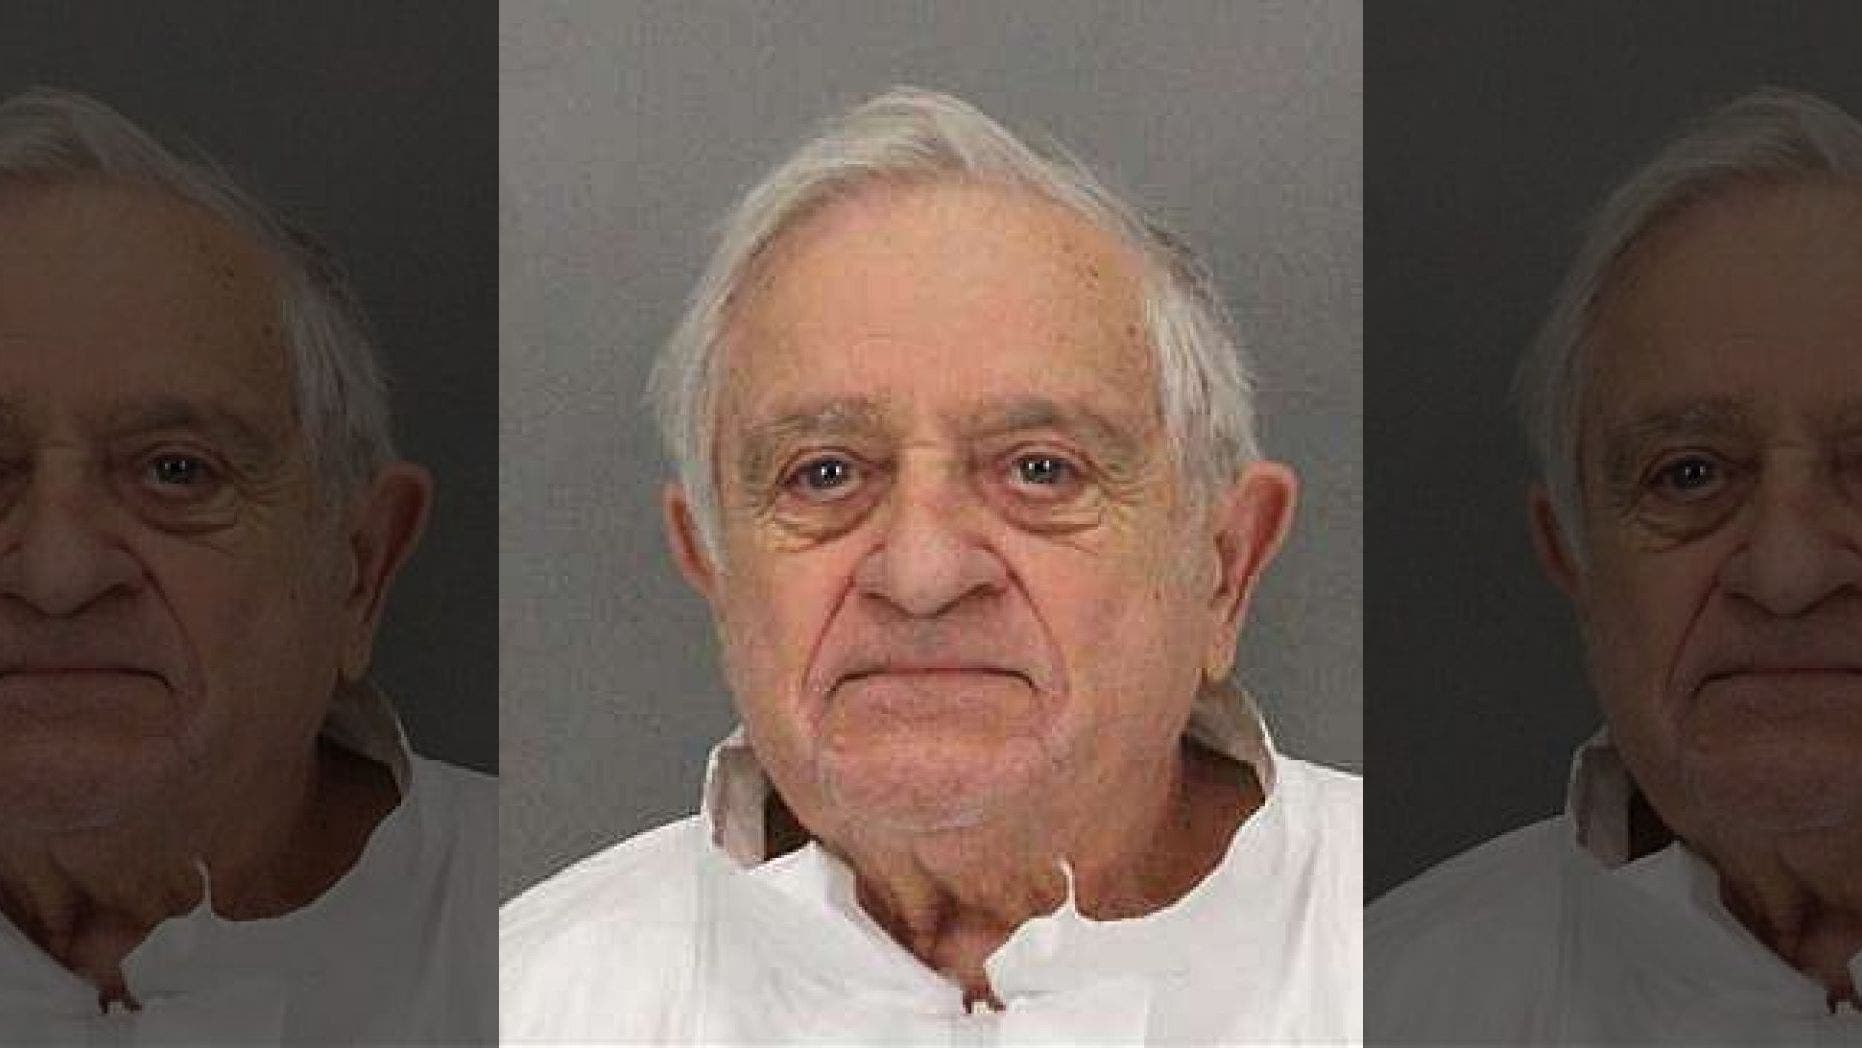 Anthony Aiello, 90, was arrested on suspicion of murdering his stepdaughter.